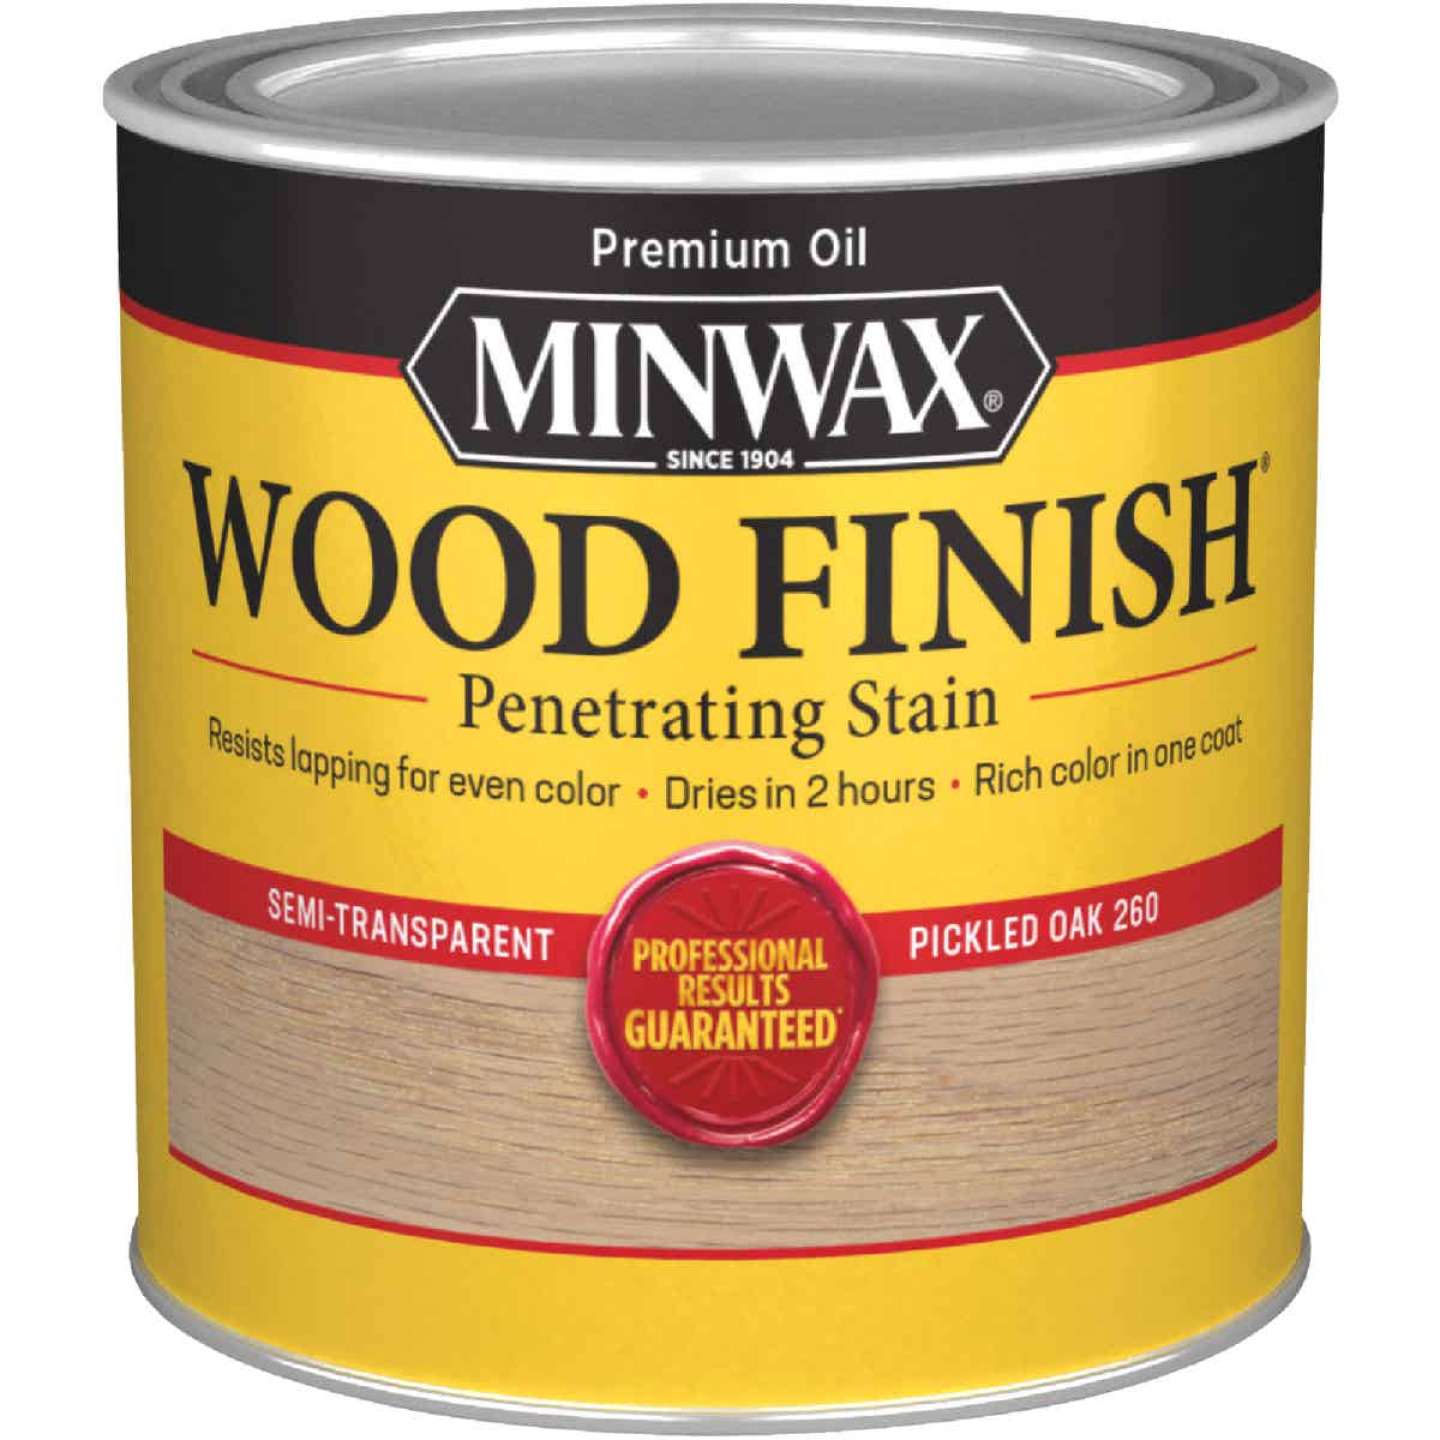 Minwax Wood Finish Penetrating Stain, Pickled Oak, 1/2 Pt. Image 1